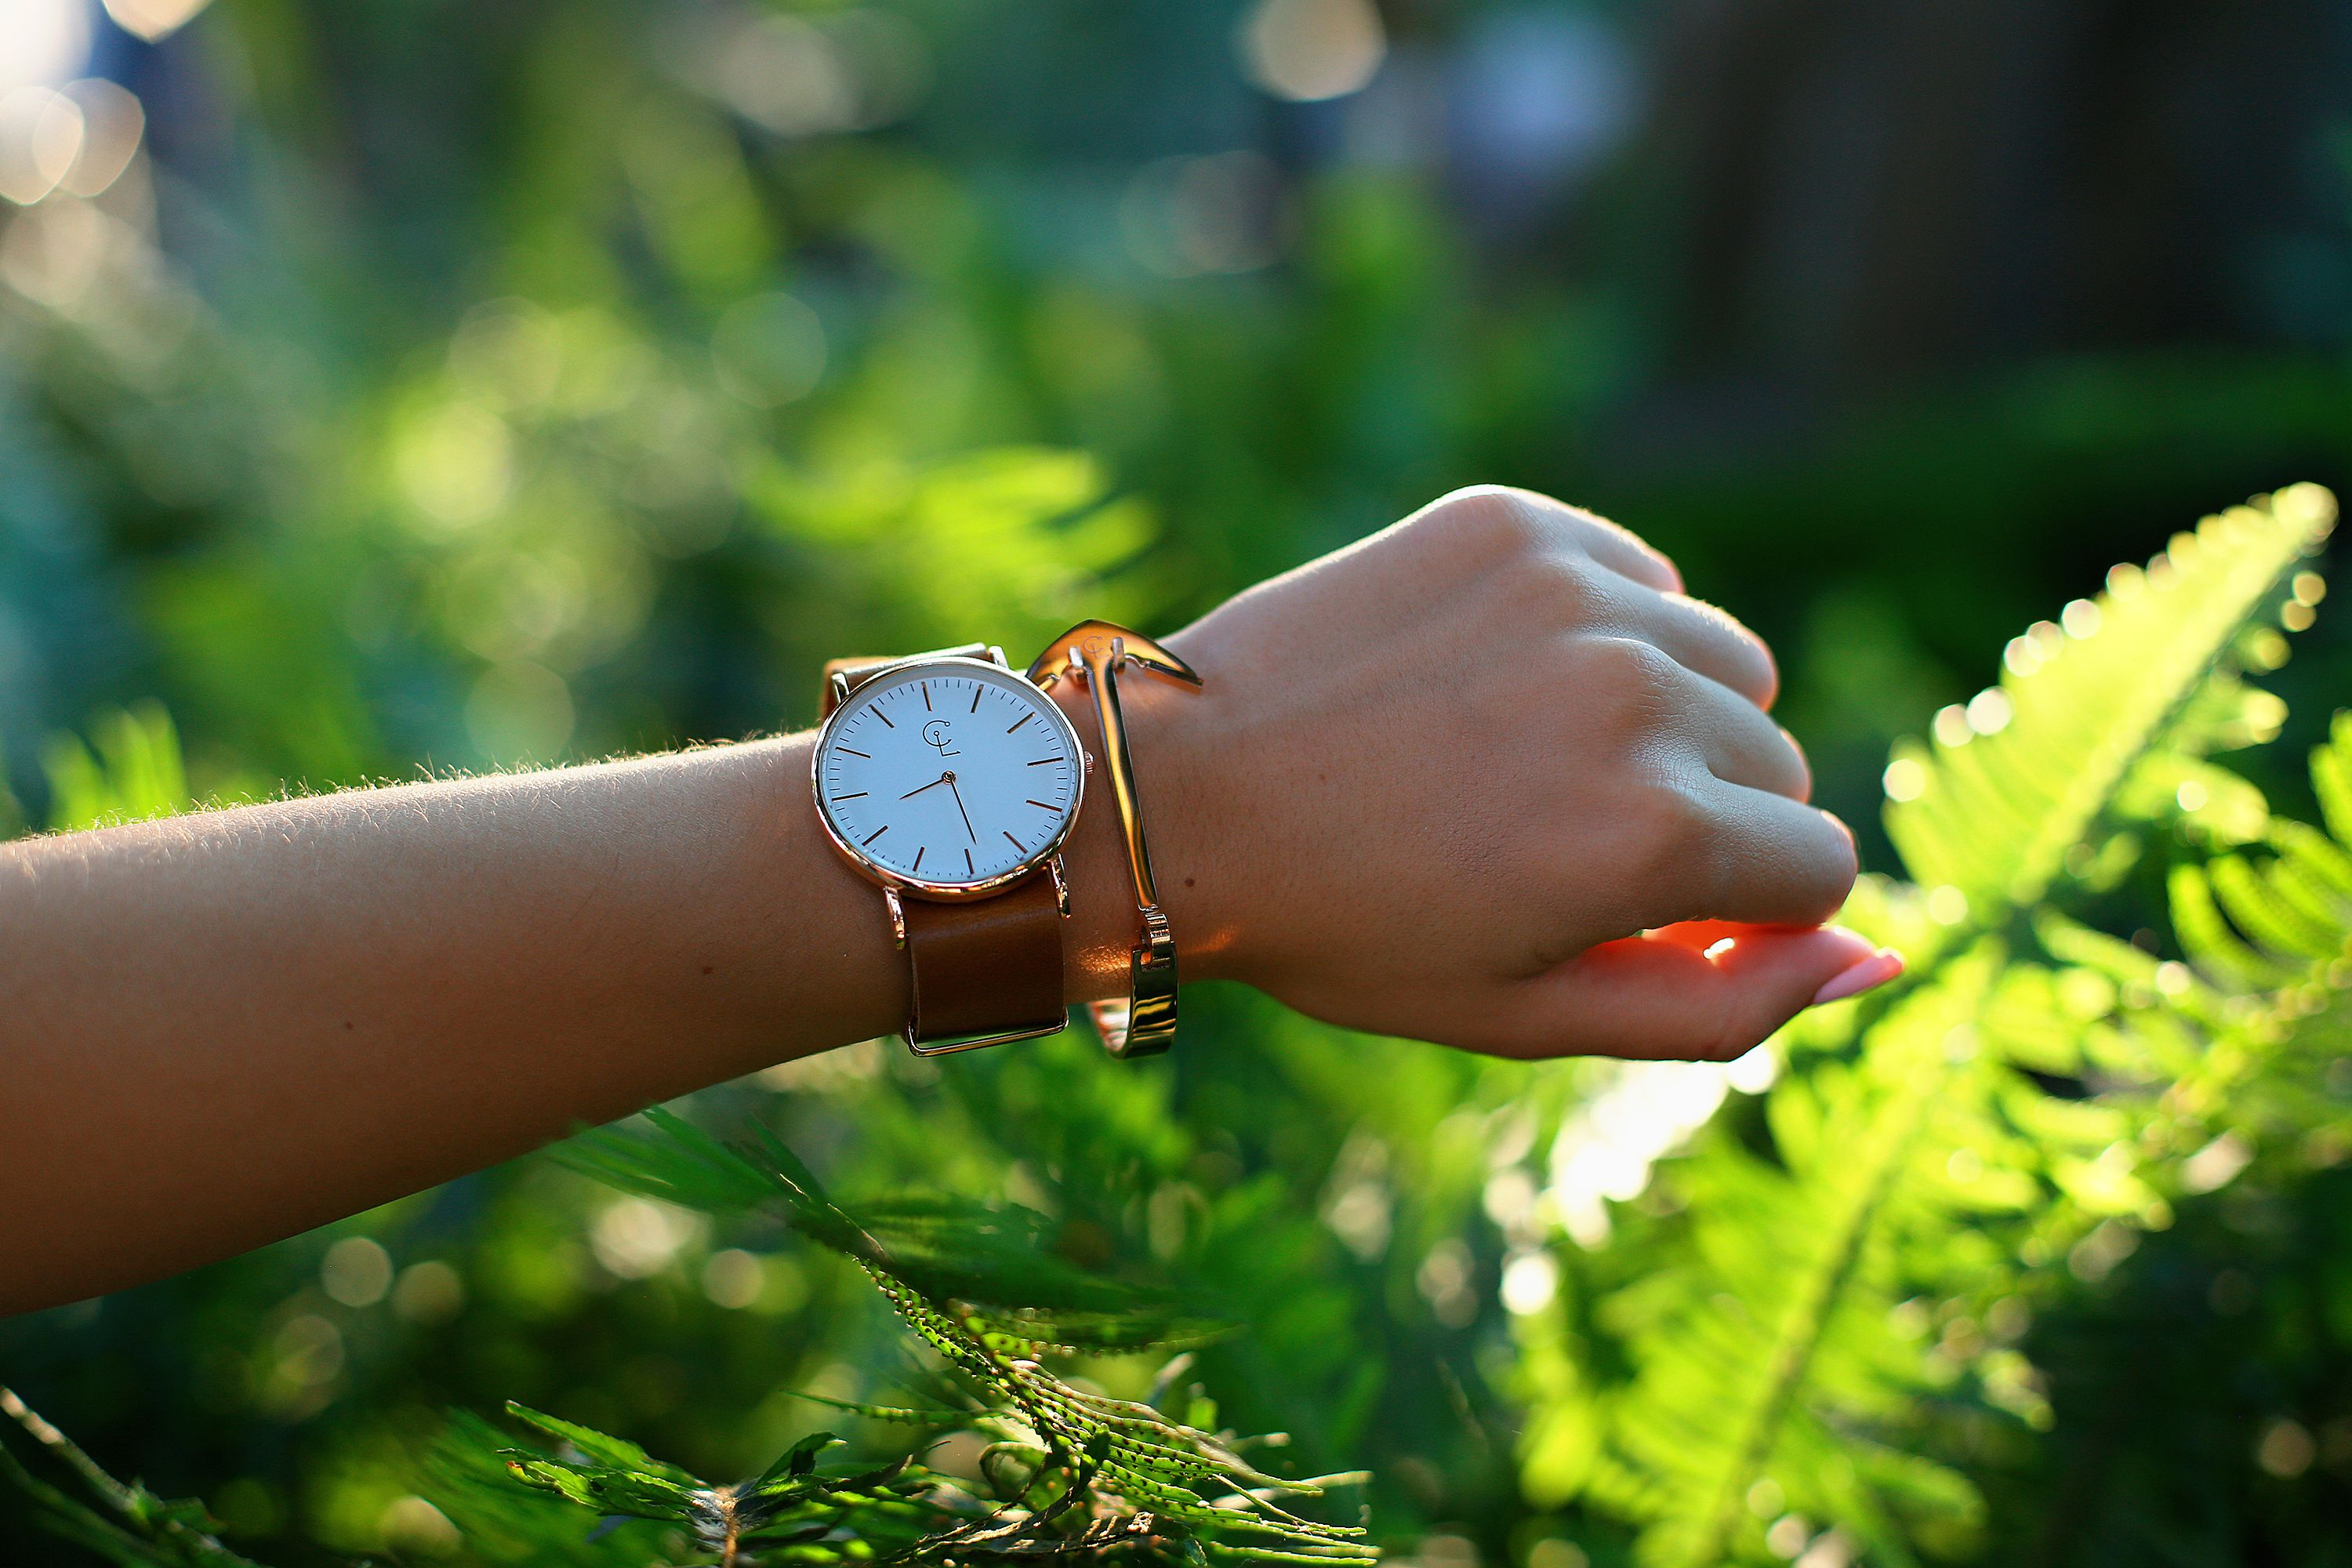 When you purchase this watch and anchor bracelet from Coastal Links, 15% of proceeds are donated to Water.org.